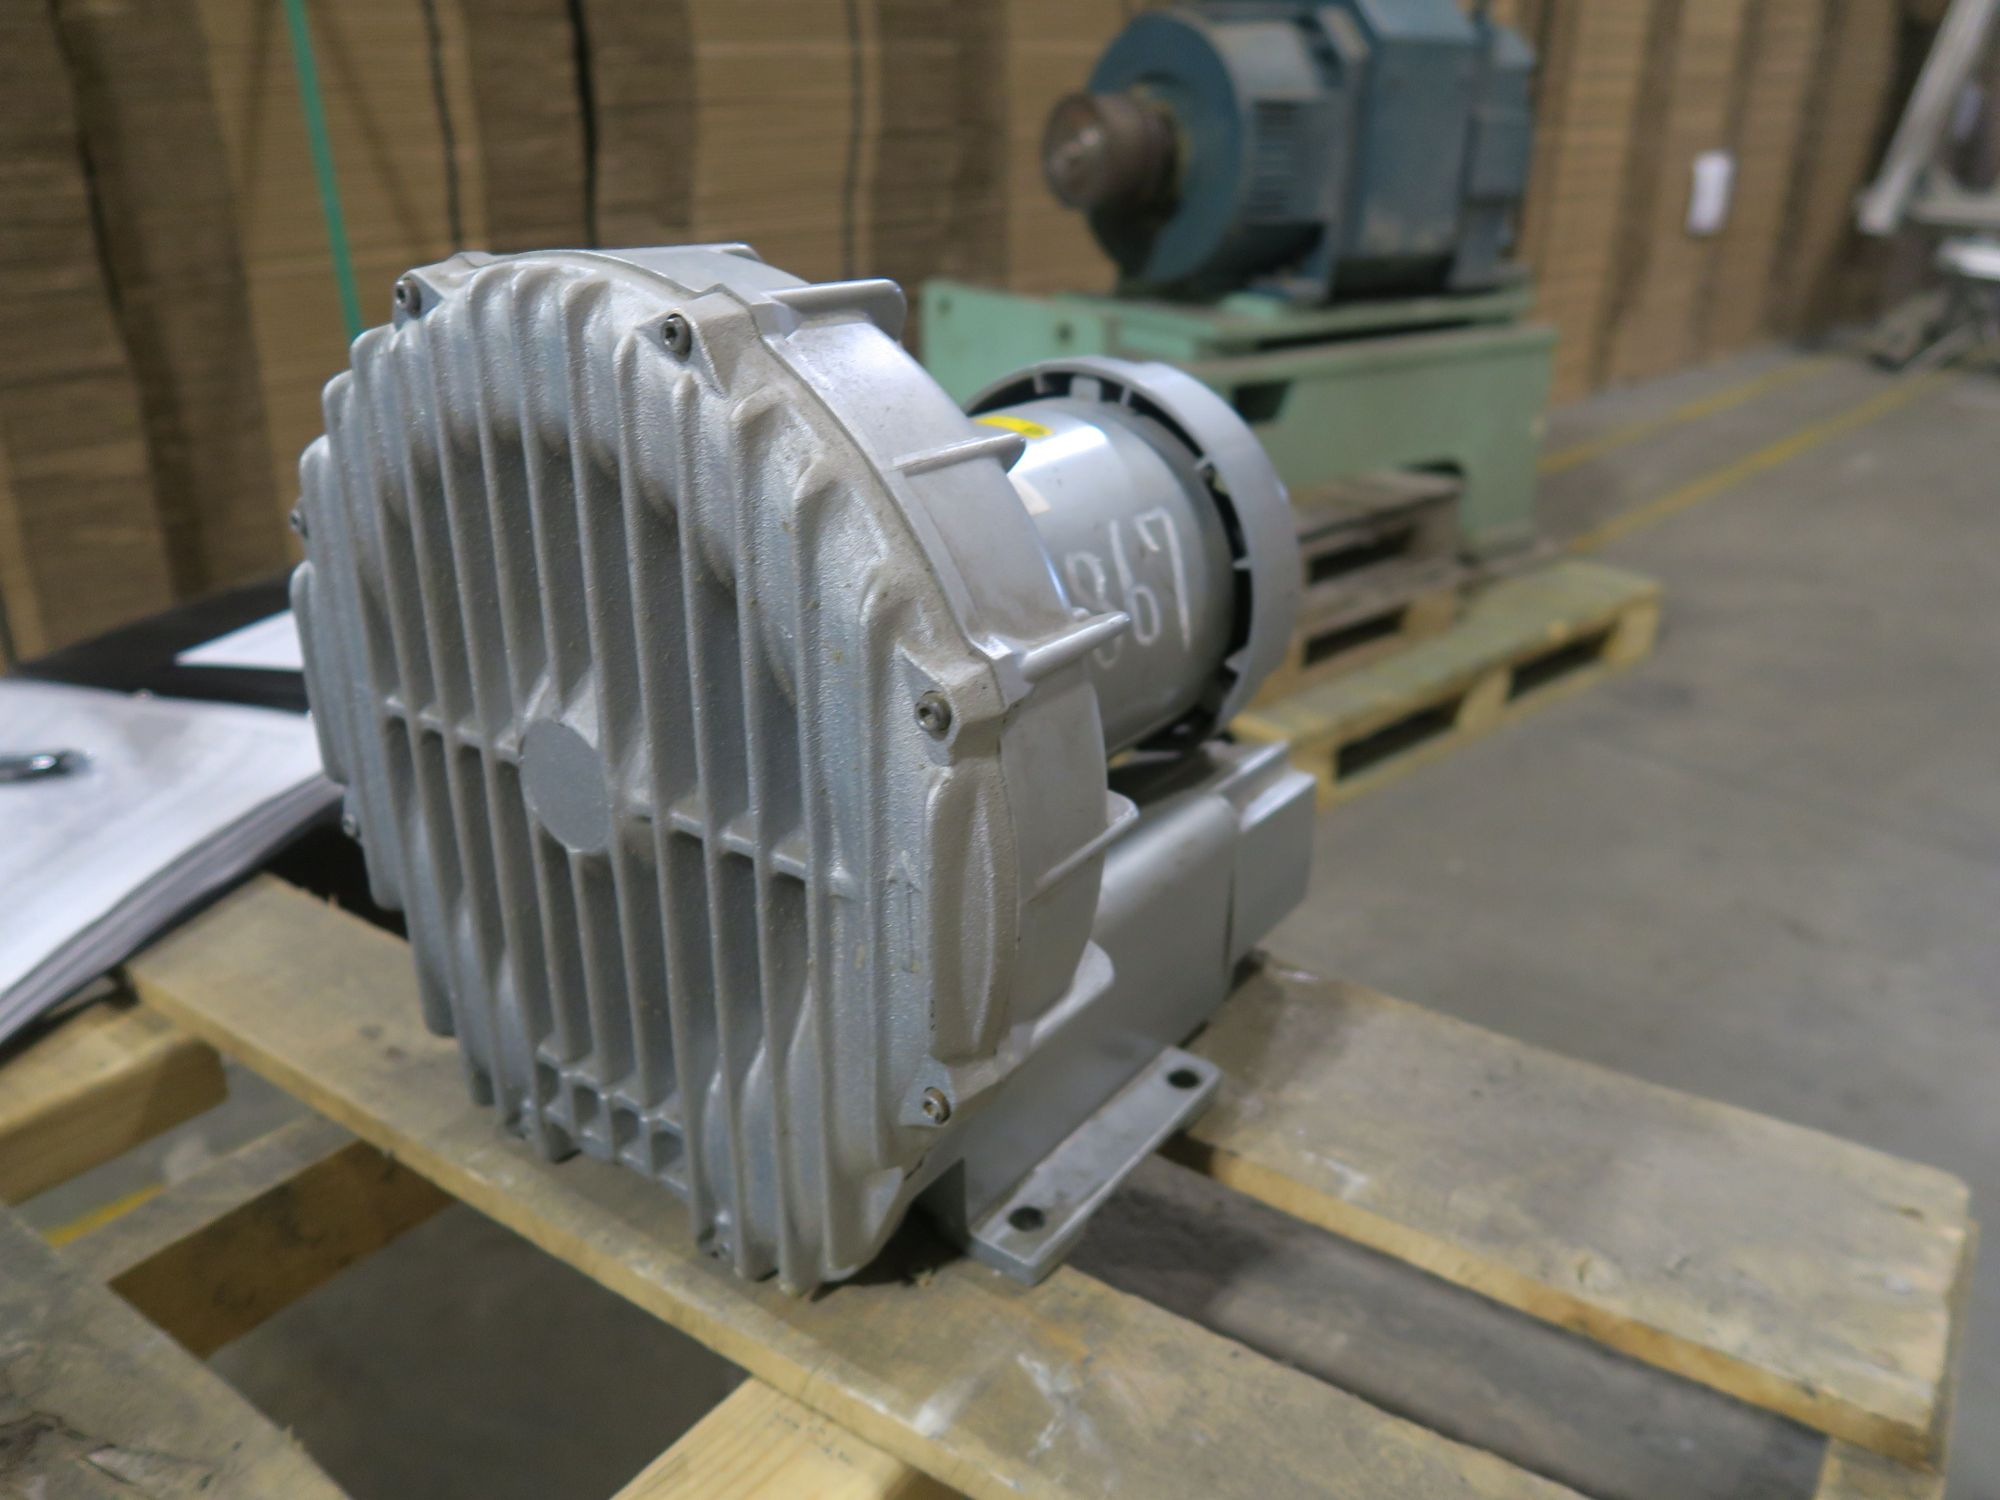 hight resolution of pre owned regenerative blowers gast idex r4310a 2 1hp 3600 rpm for sale